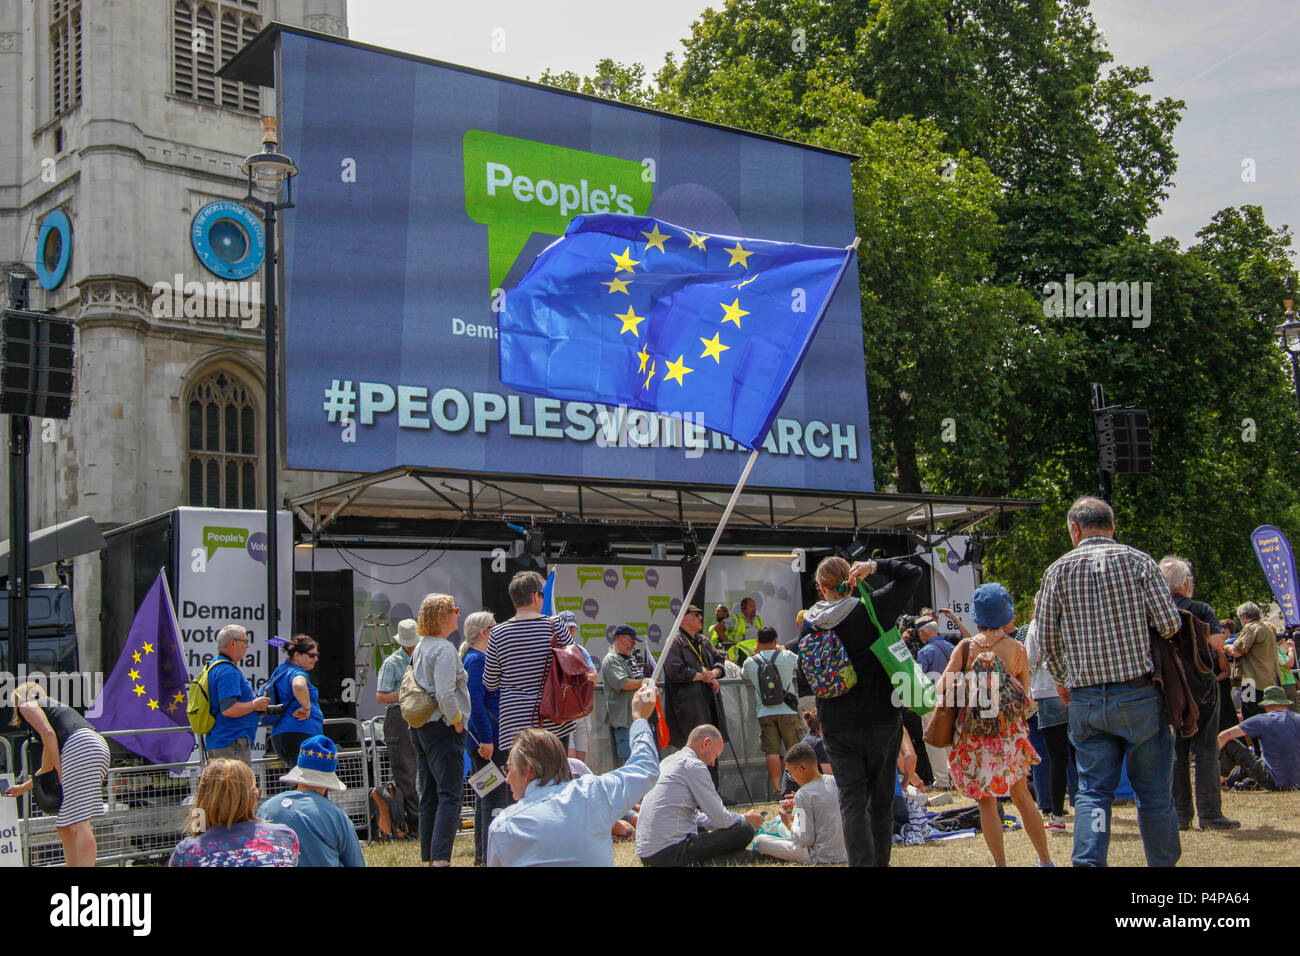 London, UK. 23rd June 2018. People's Vote March Credit: Alex Cavendish/Alamy Live News - Stock Image